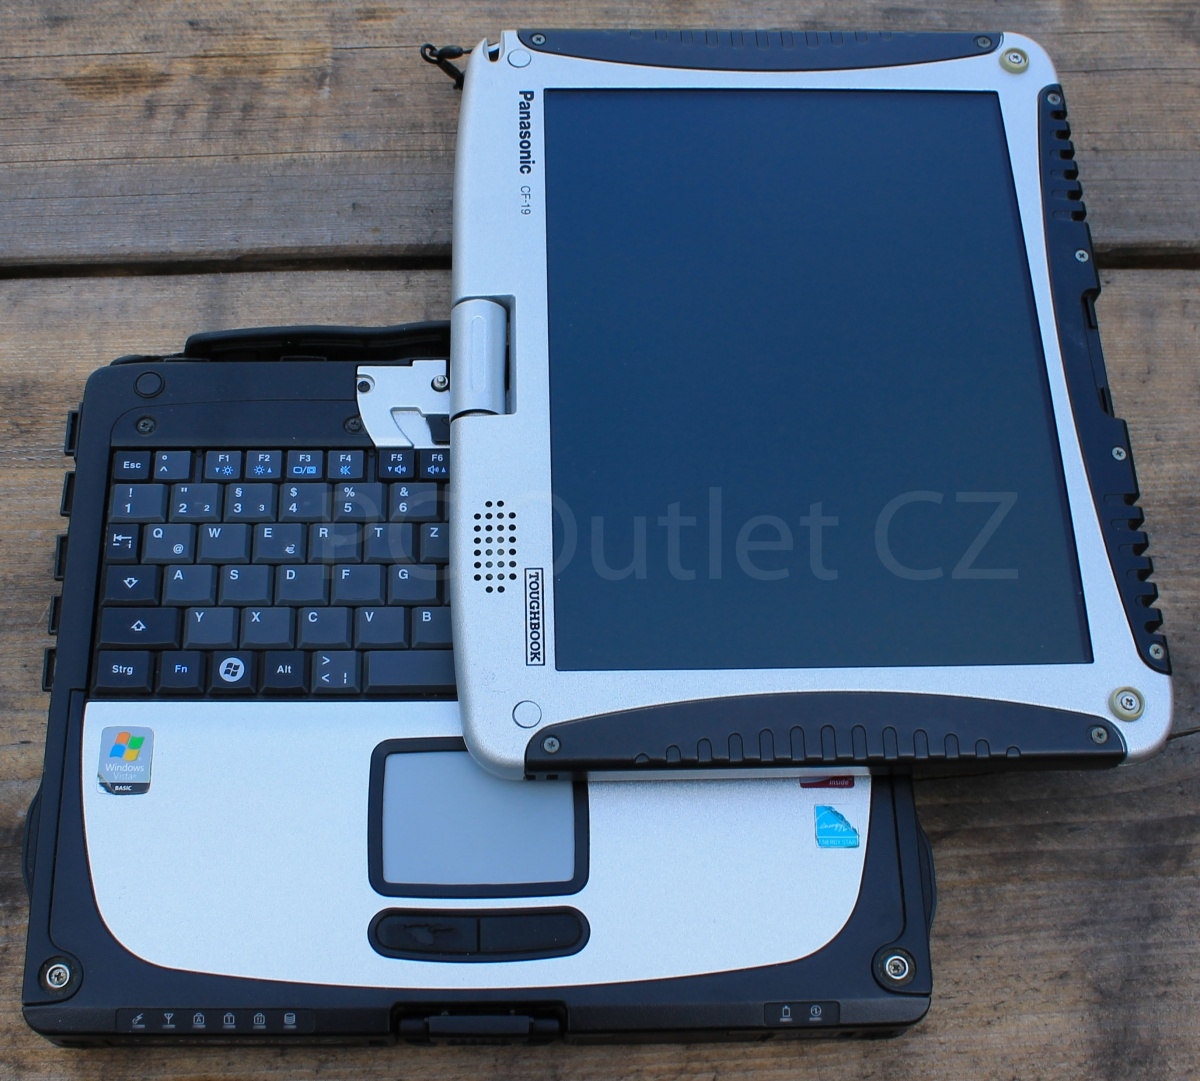 Panasonic-Toughbook-CF-19-8.jpg